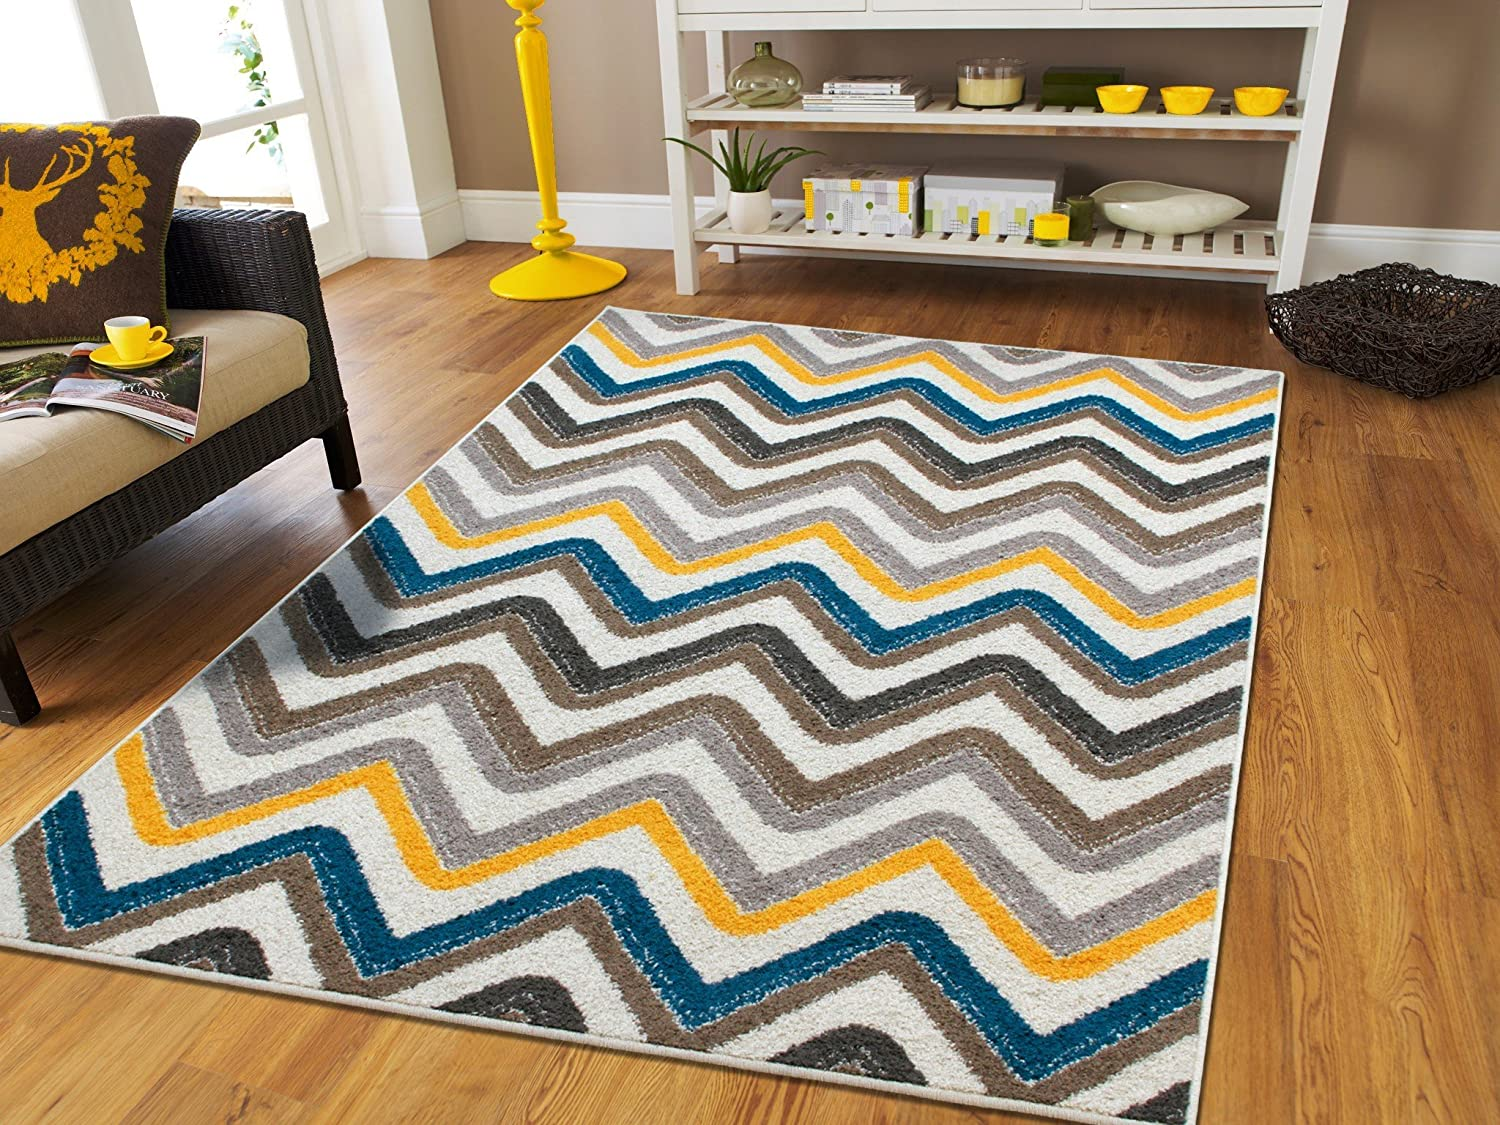 Amazon.com: New Fashion ZigZag Style Large Area Rugs 8x11 Clearance Under  100 Blue Brown Cream Yellow Grey Best Rugs For Dogs 8x11 Area Rugs  Clearance ...